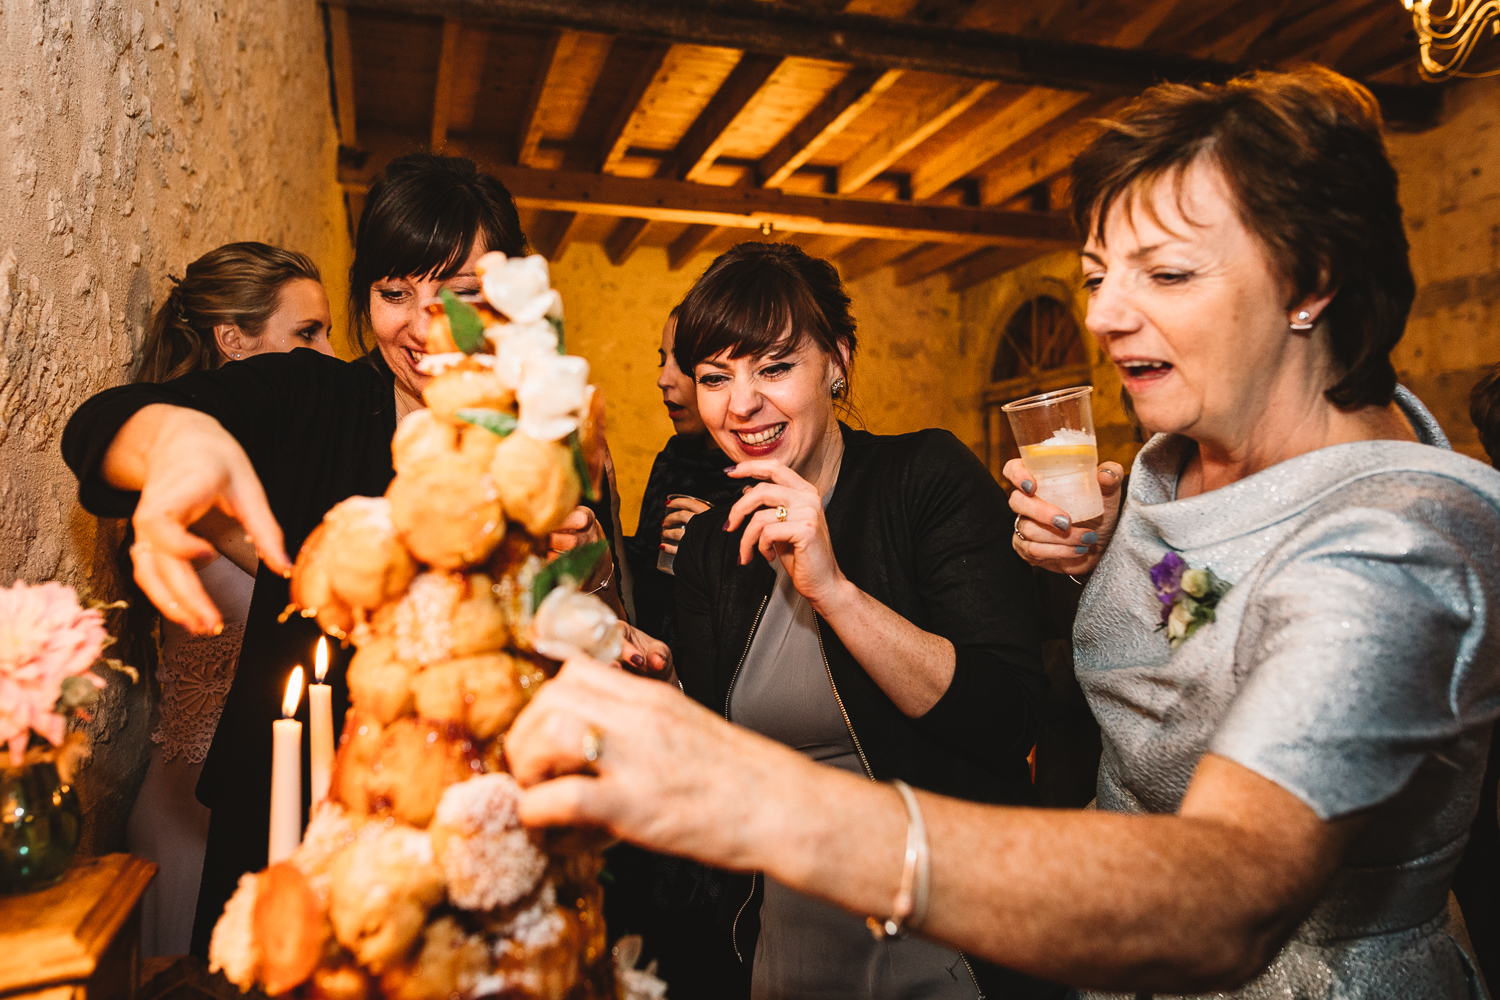 Guests grabbing for the Croquembouche wedding cake at fun and  relaxed Destination Wedding Photographer at Chateau Lasfargues in France